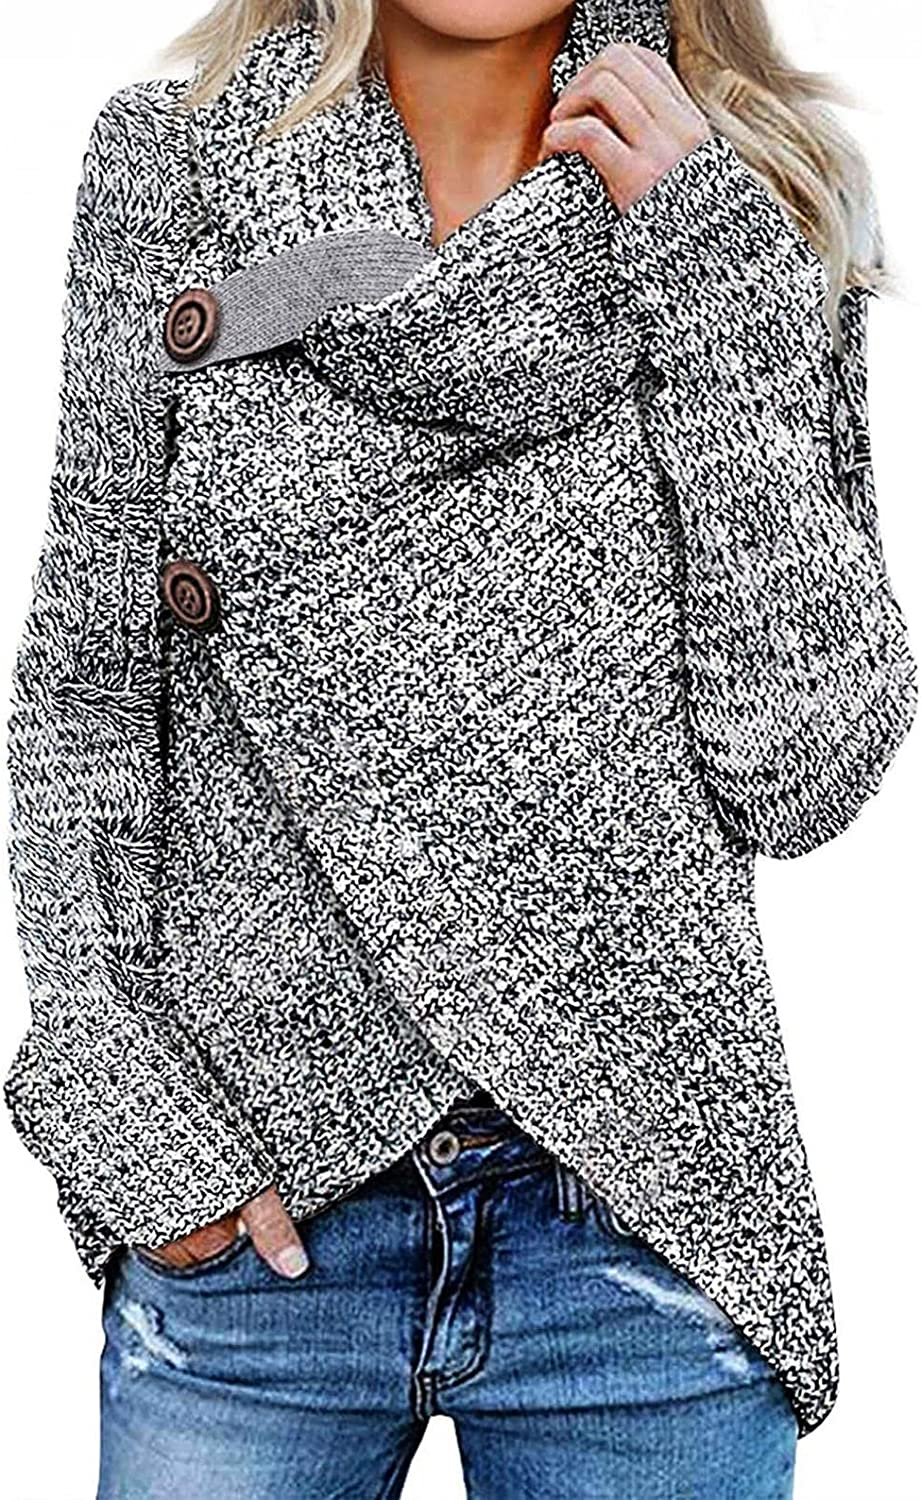 Sweaters for Women Oversized Cowl Neck Sweaters Casual Long Sleeve Asymmetric Wrap Pullover Knitted Sweater Jumper Tops